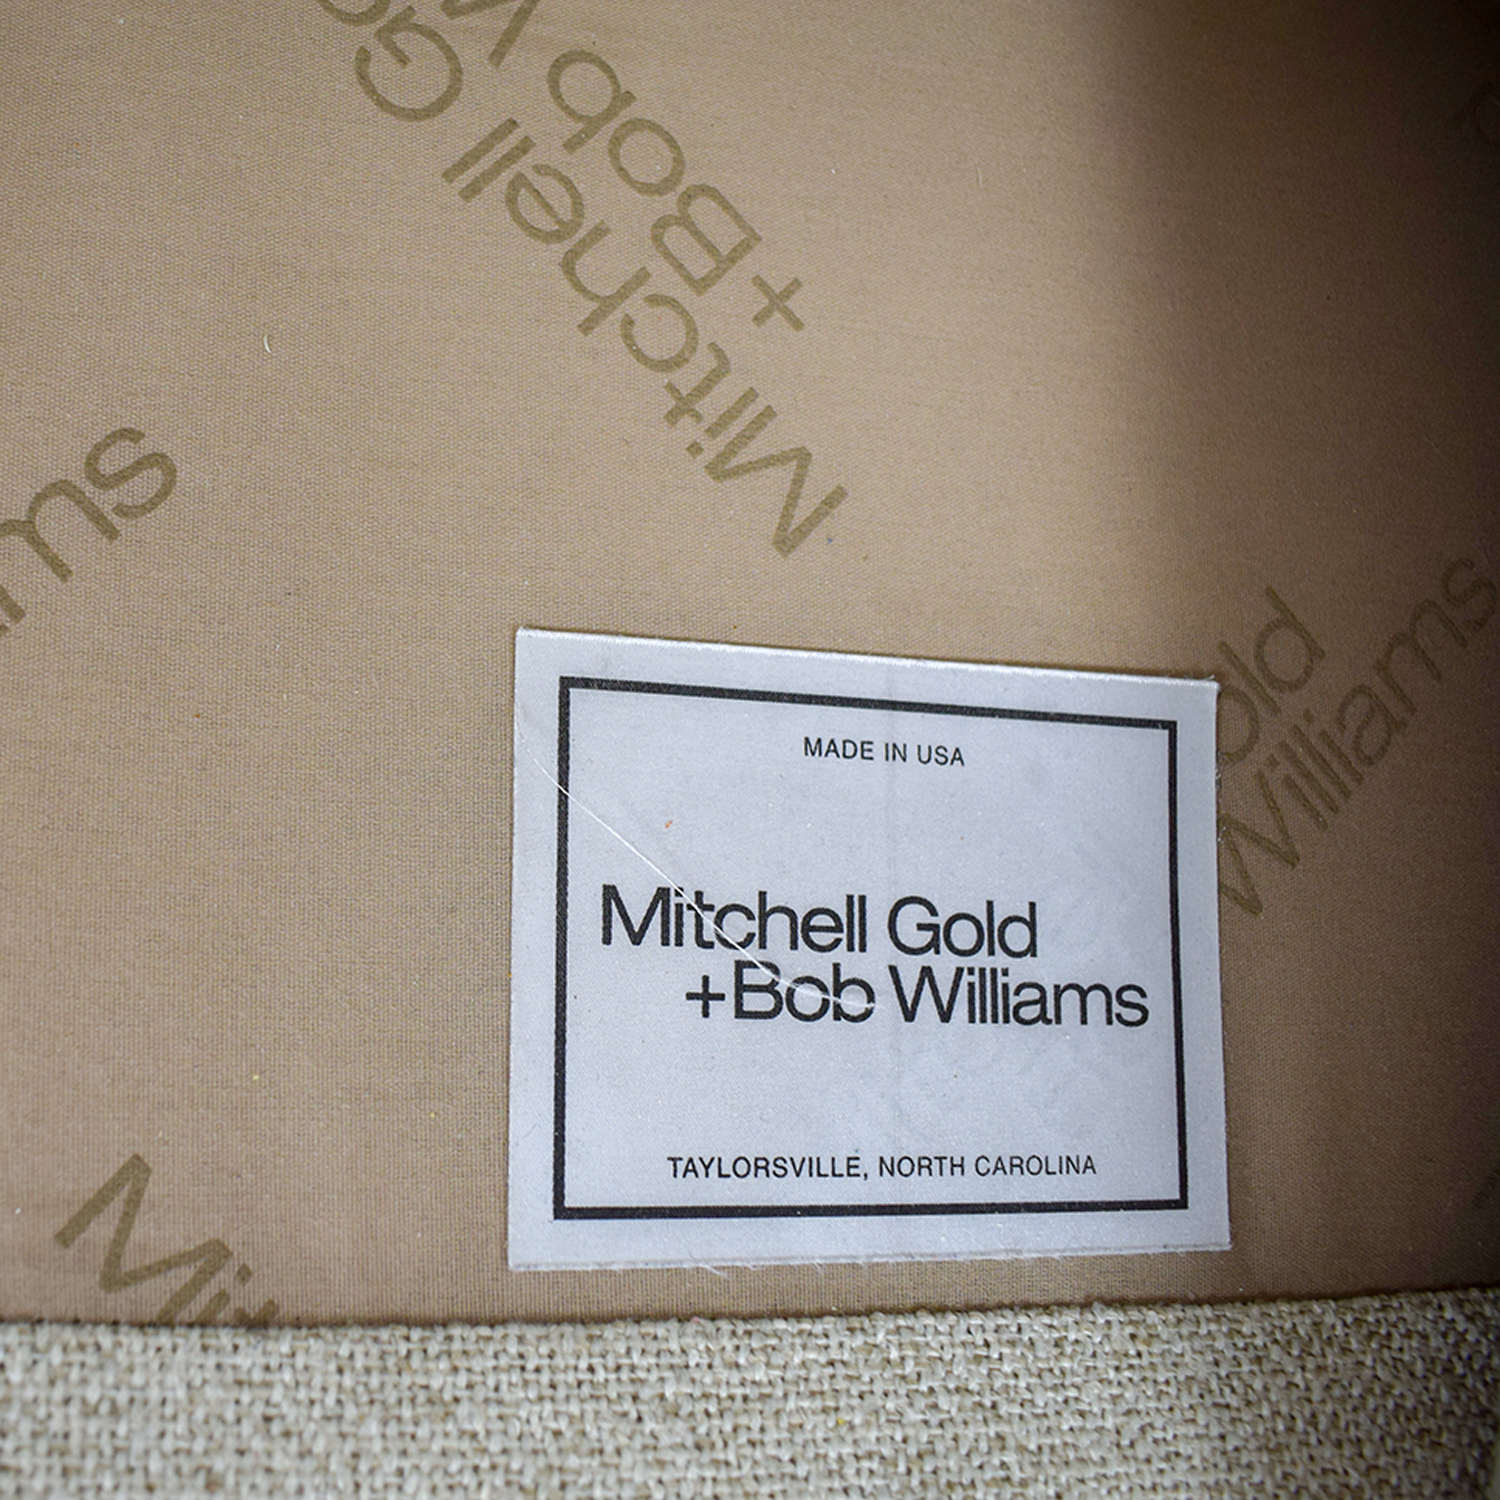 Mitchell Gold + Bob Williams Mitchell Gold + Bob Williams Beige L-Shaped Sectional nj